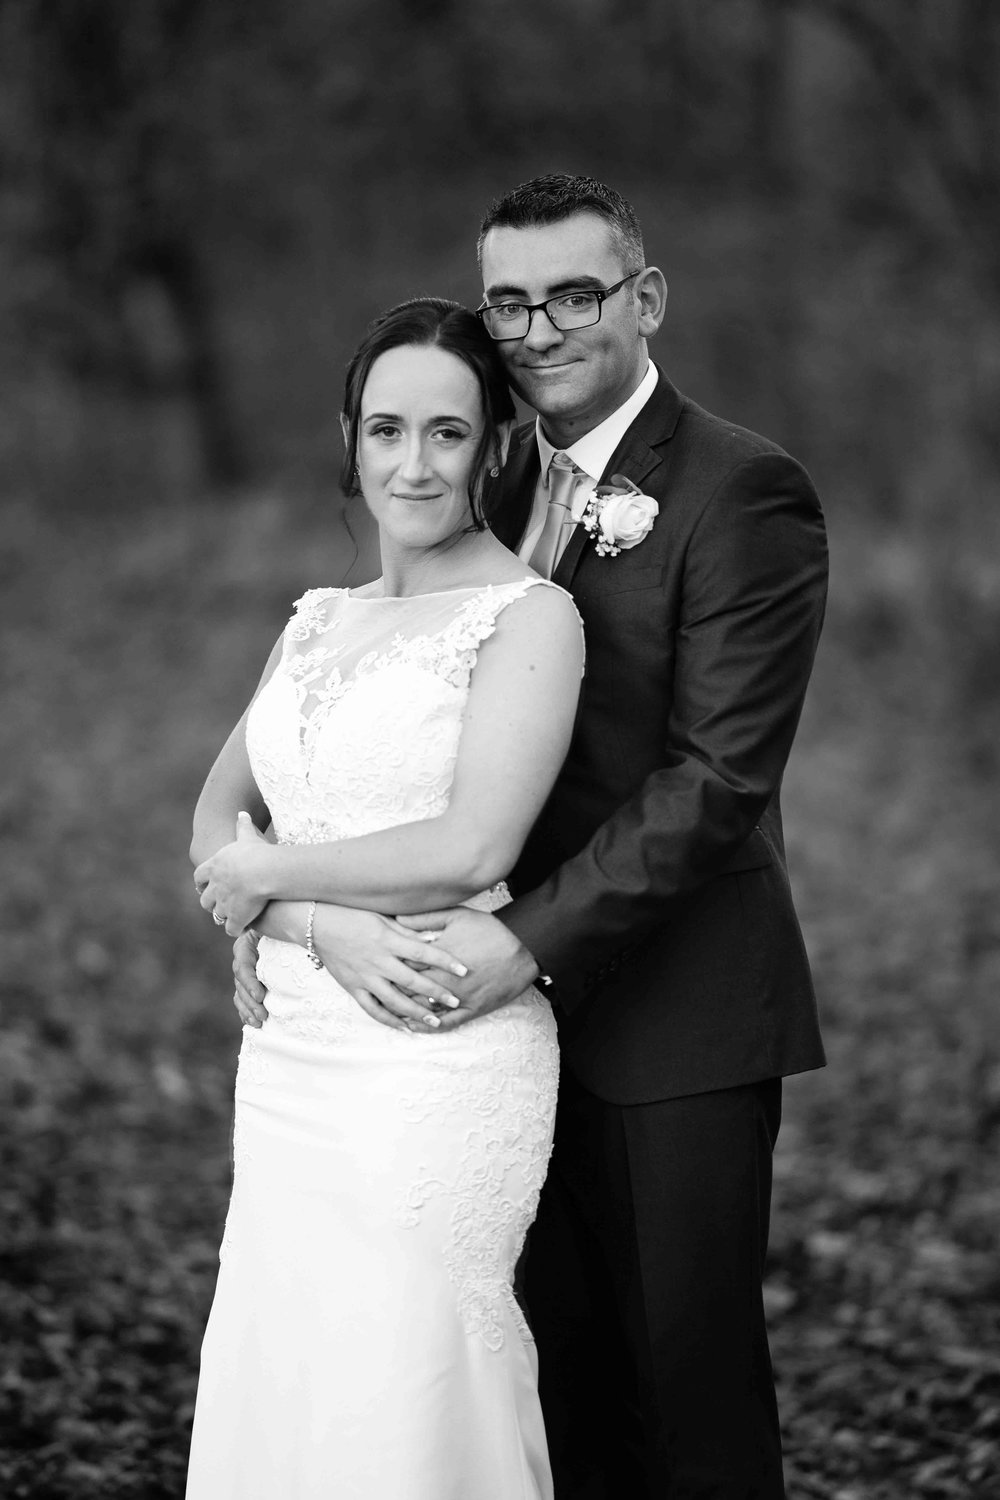 wedding-photos-willenhall-wedding-photographer-wolverhampton-wedding-photographer-west-midlands-wedding-photographer-birmingham-bride-and-groom-photos.jpg